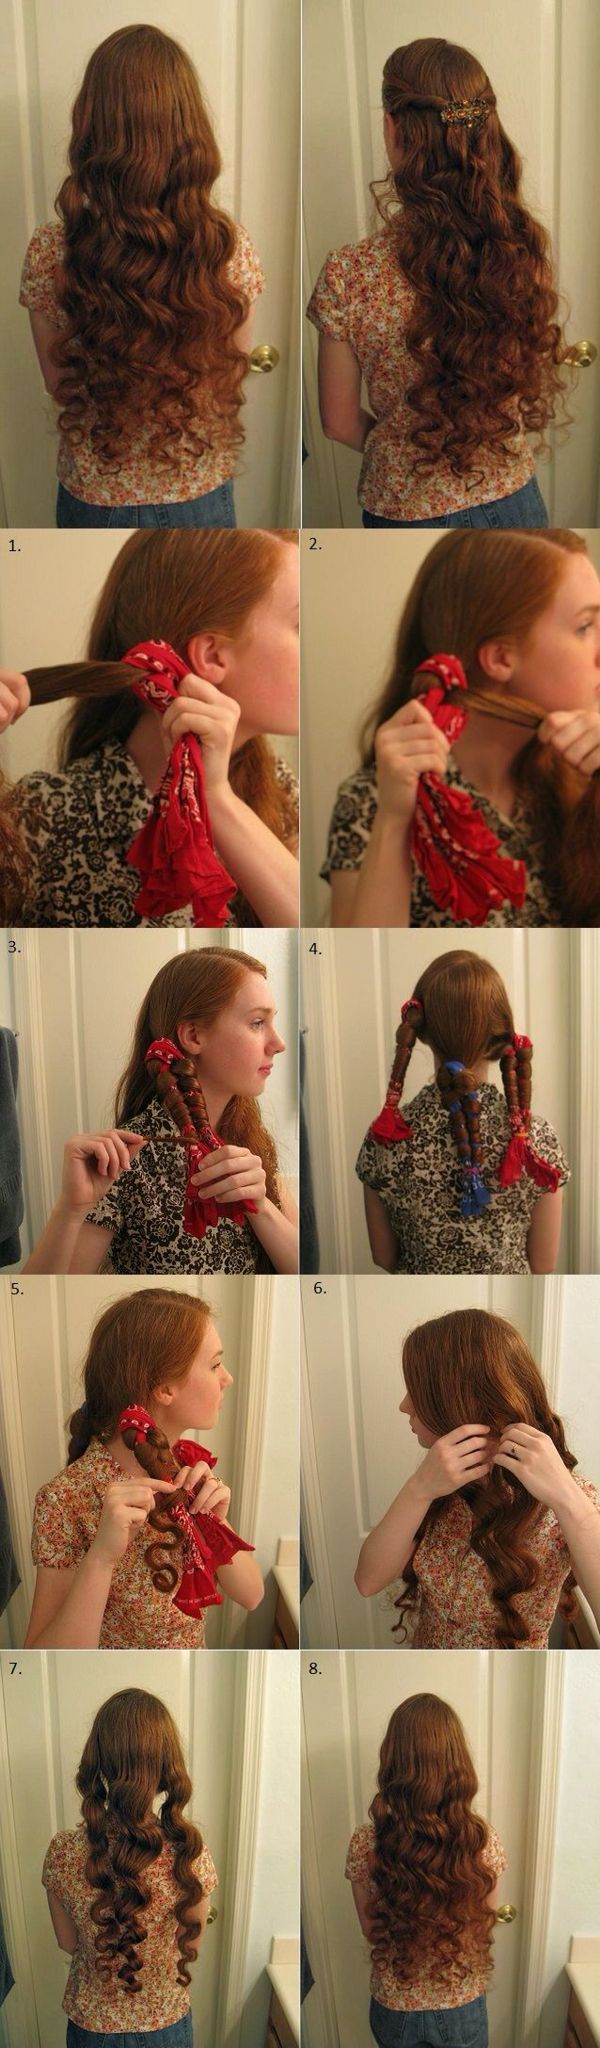 Wet dries to curls hair pinterest hair style makeup and tutorials